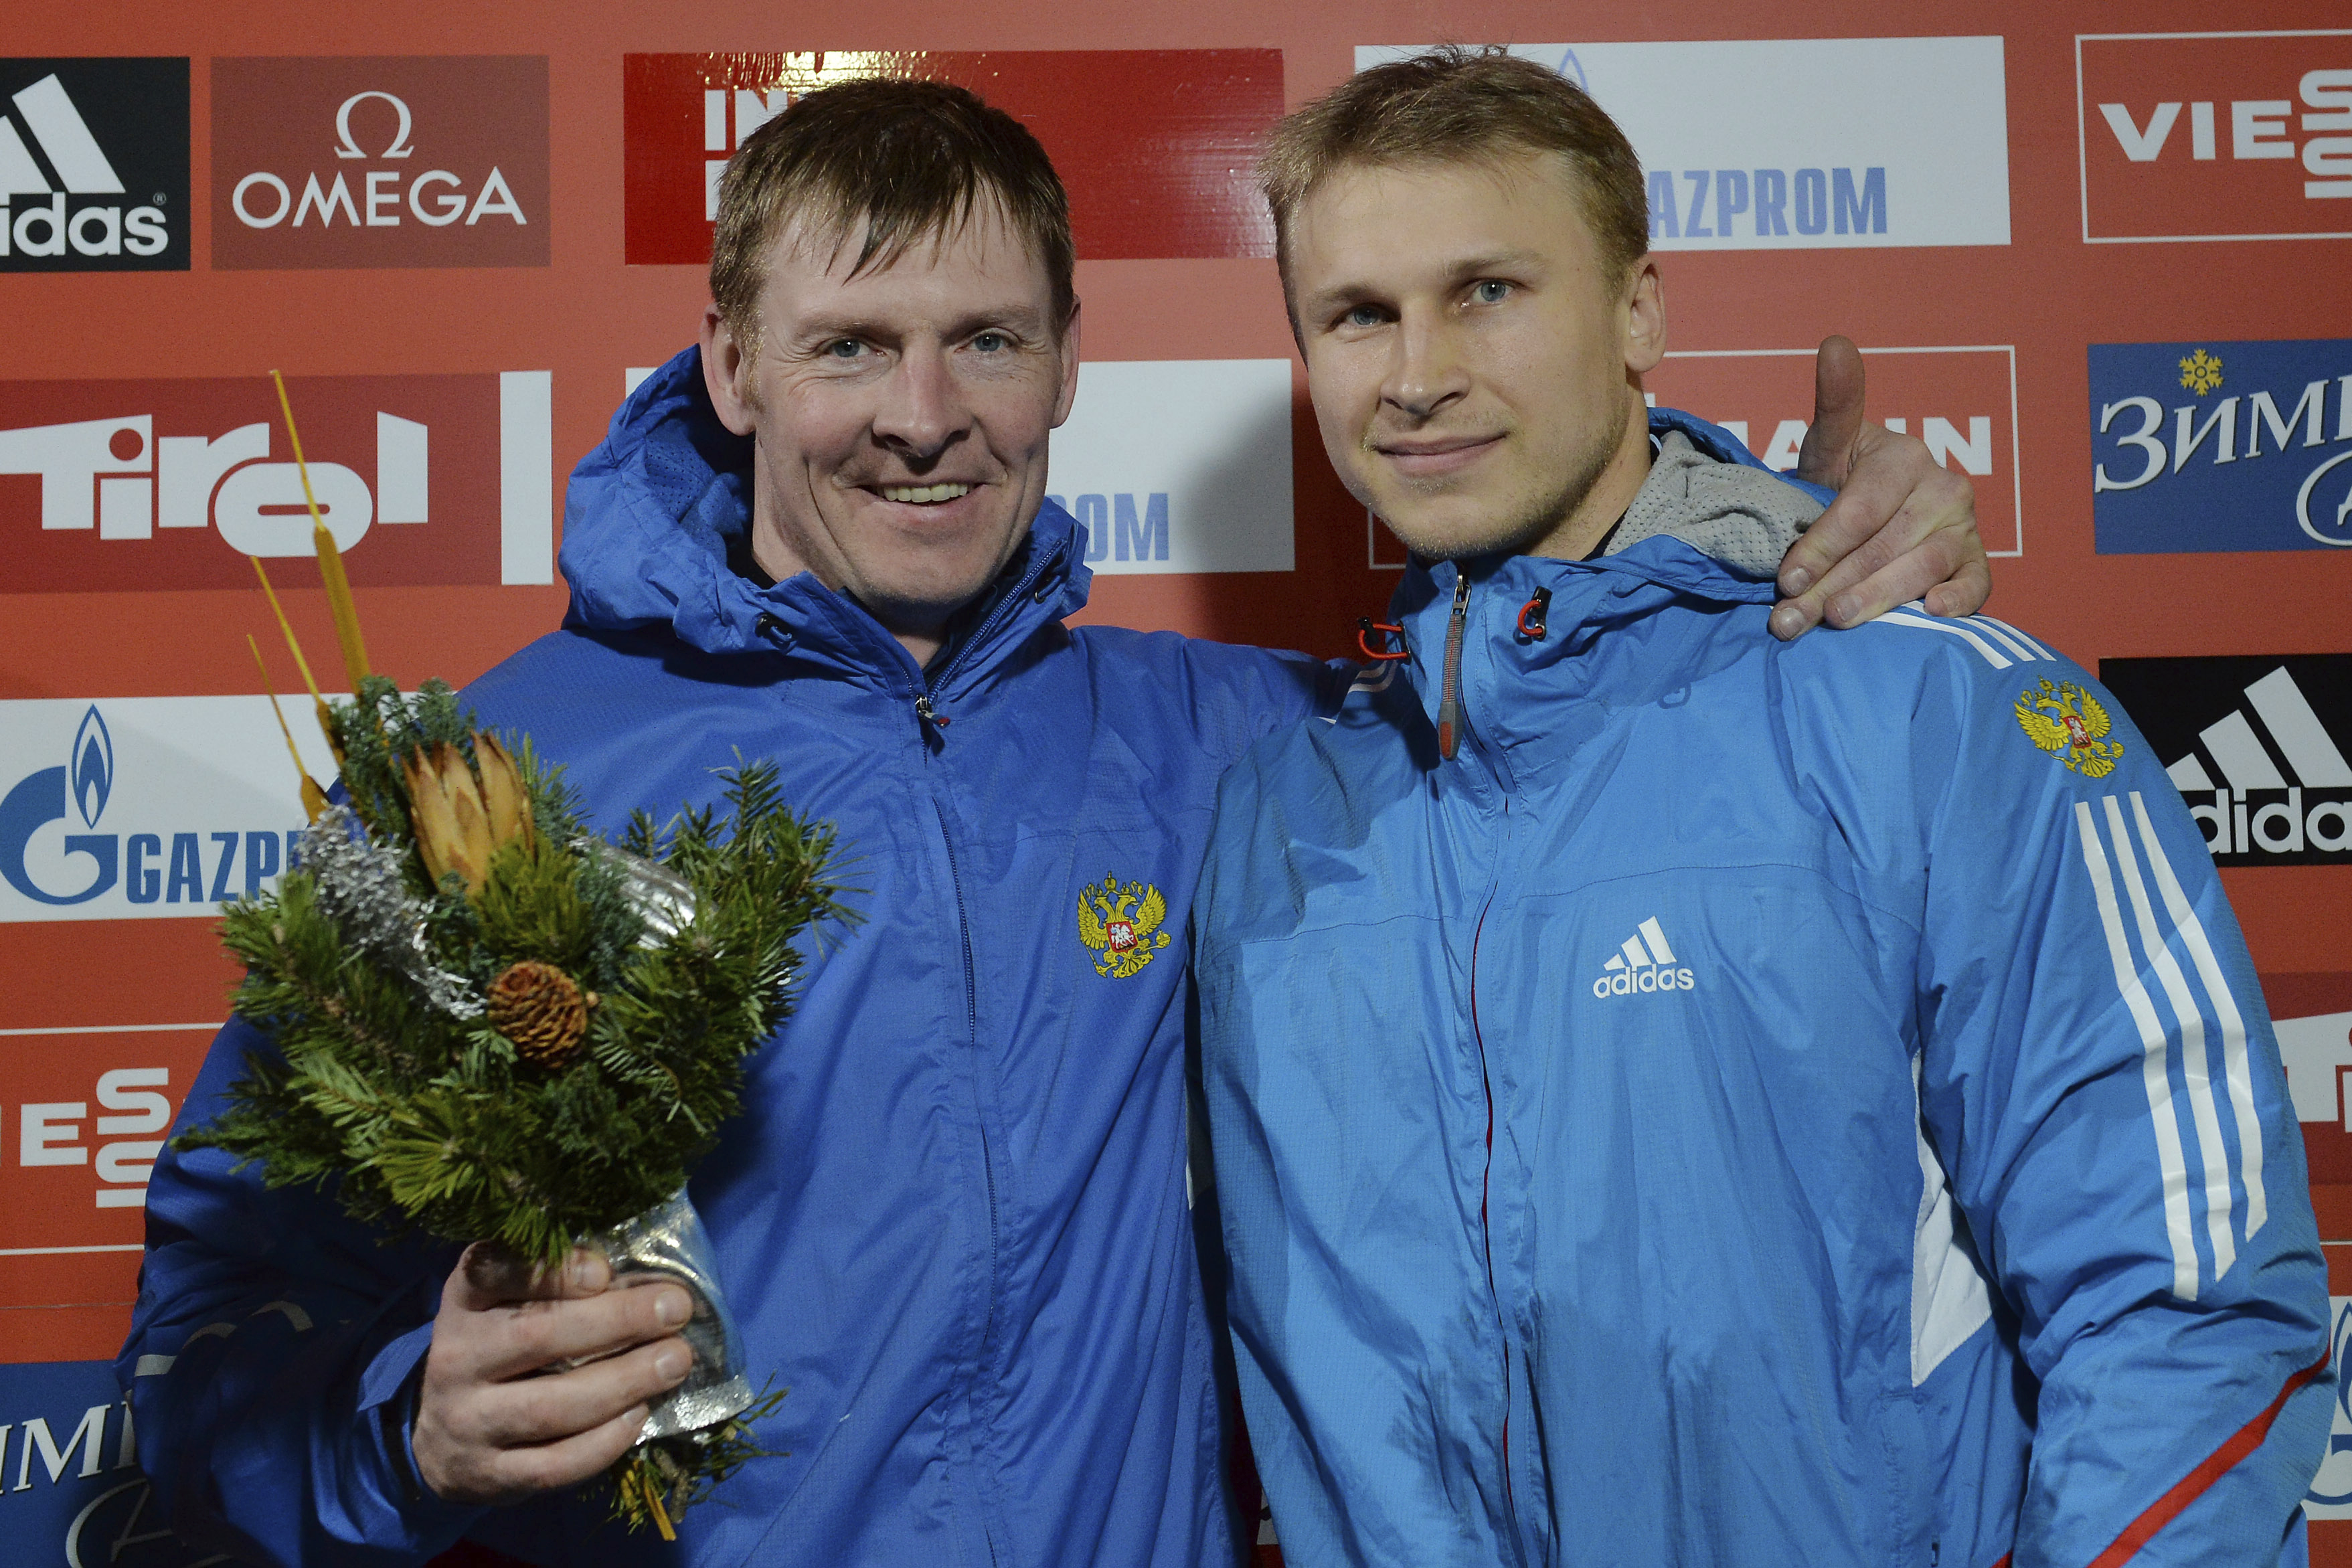 FILE In this Saturday, Jan. 18. 2014 file photo Russia's third placed Alexander Zubkov, left, and Dmitry Trunenkov pose for media after the two-men bob race at the Bob World Cup in Innsbruck, Austria. The Russian Anti-Doping Agency said Tuesday, Jan. 31,